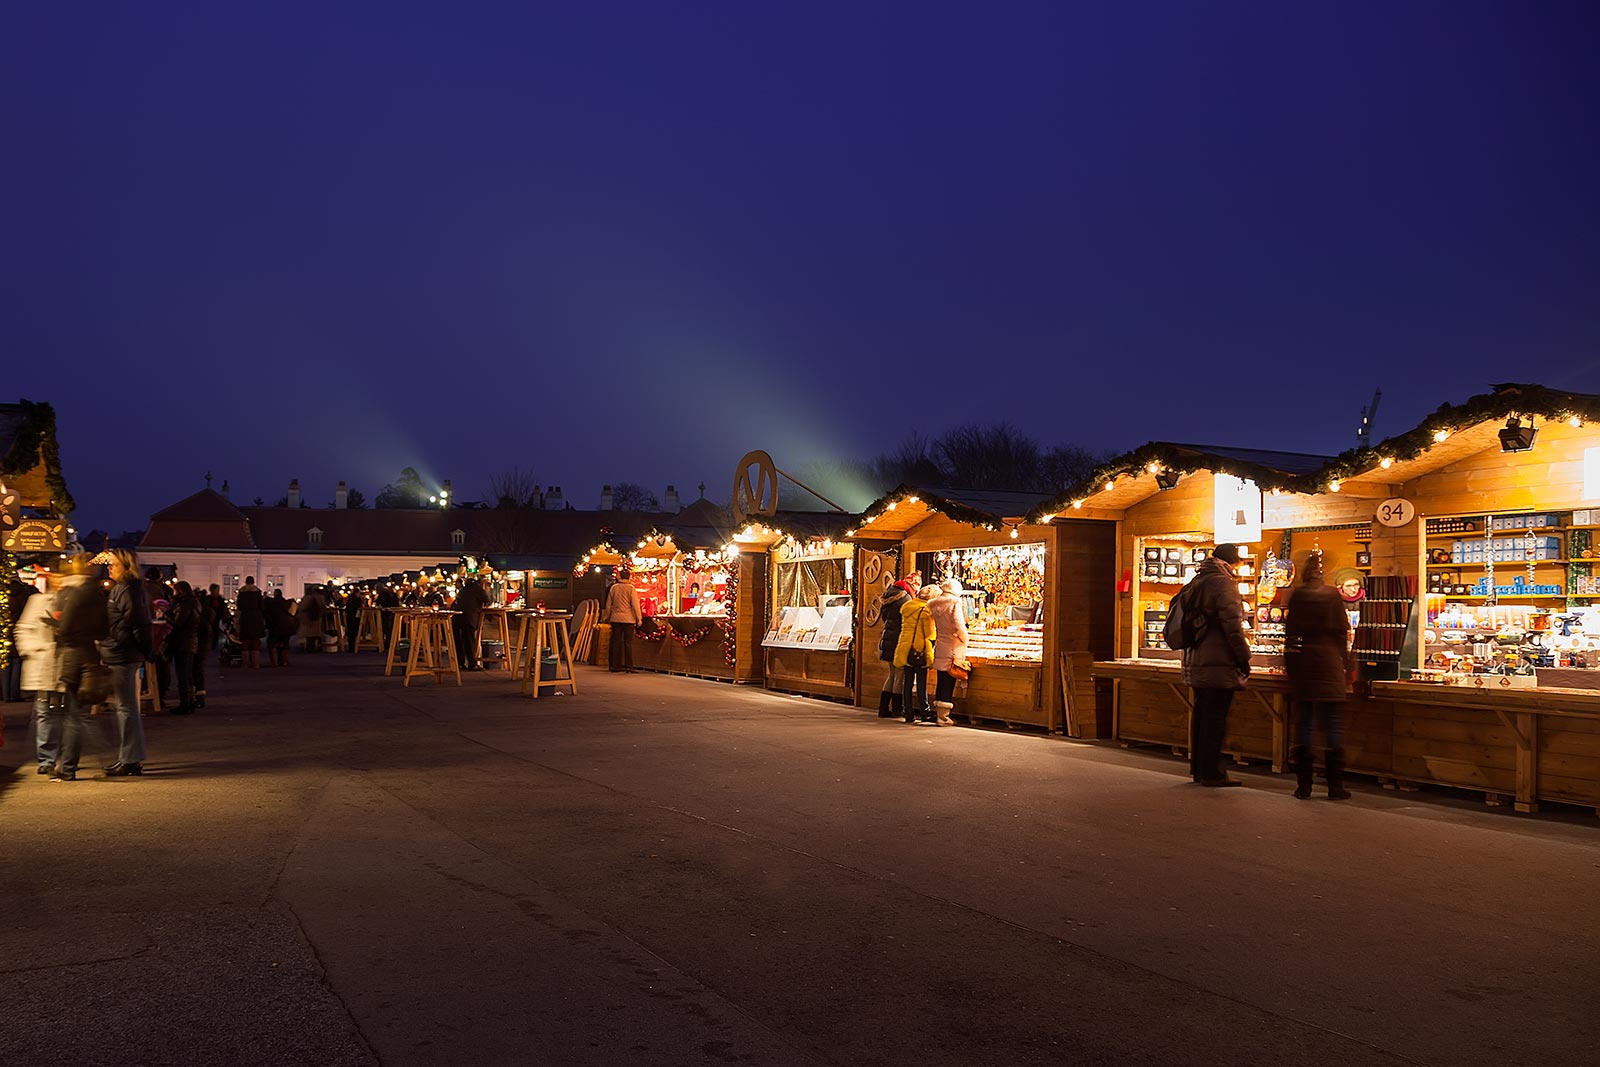 The setting at the Christmas market at the Belvedere is really lovely.